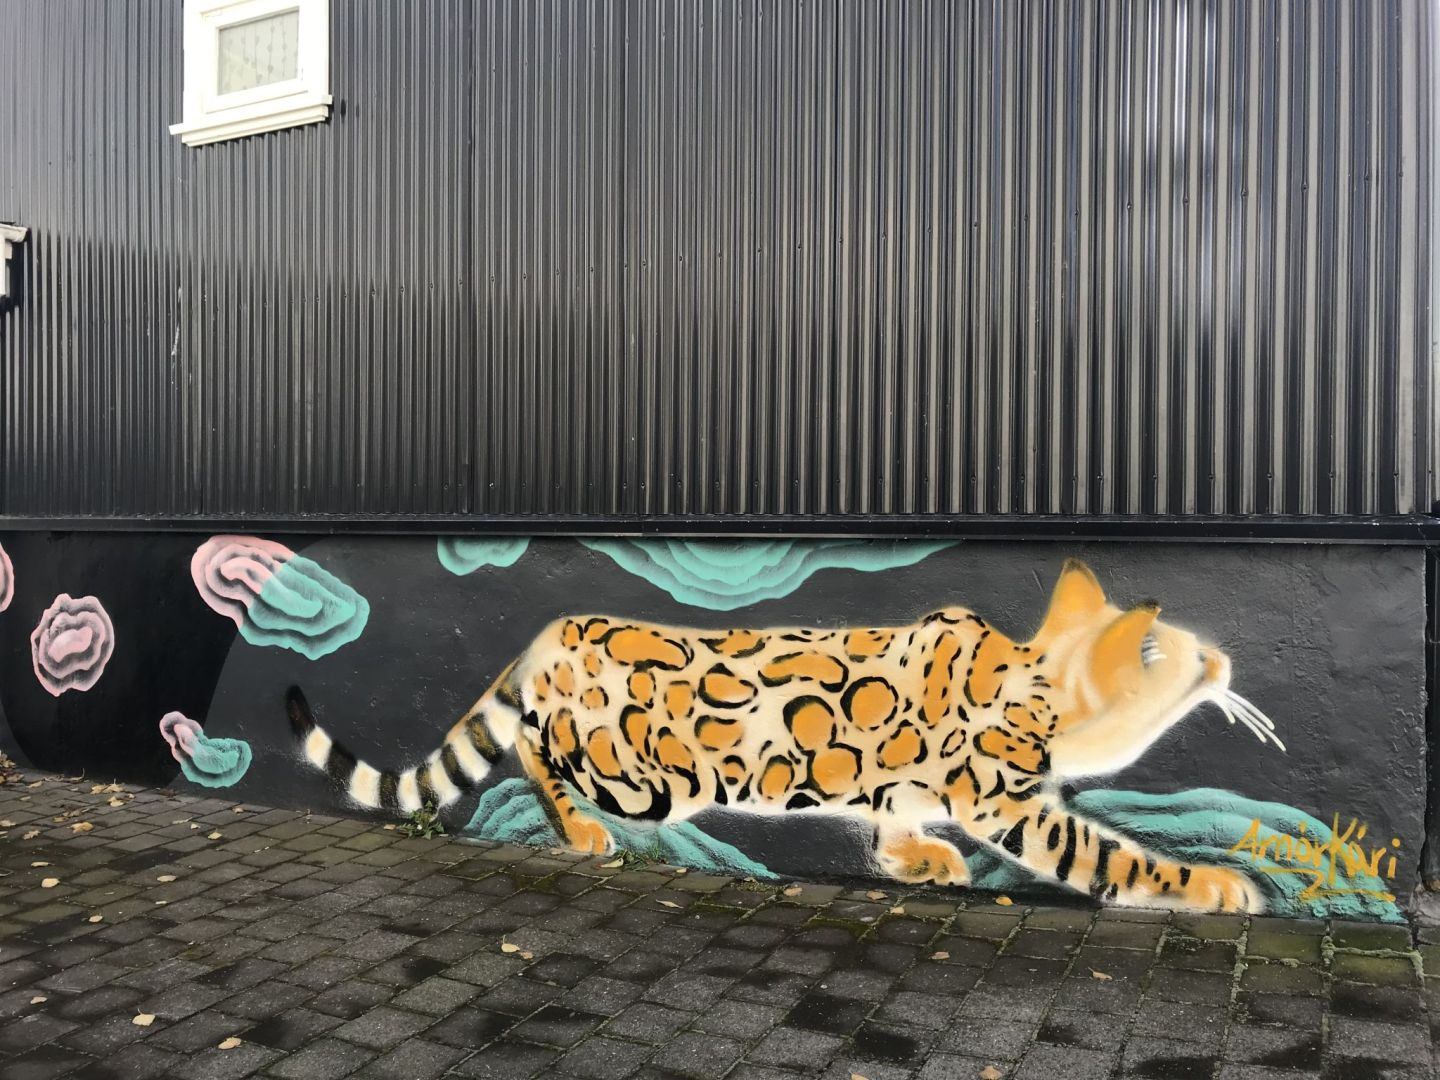 Amor Kari Cute kitty Bengal cat street art in Reykjavik